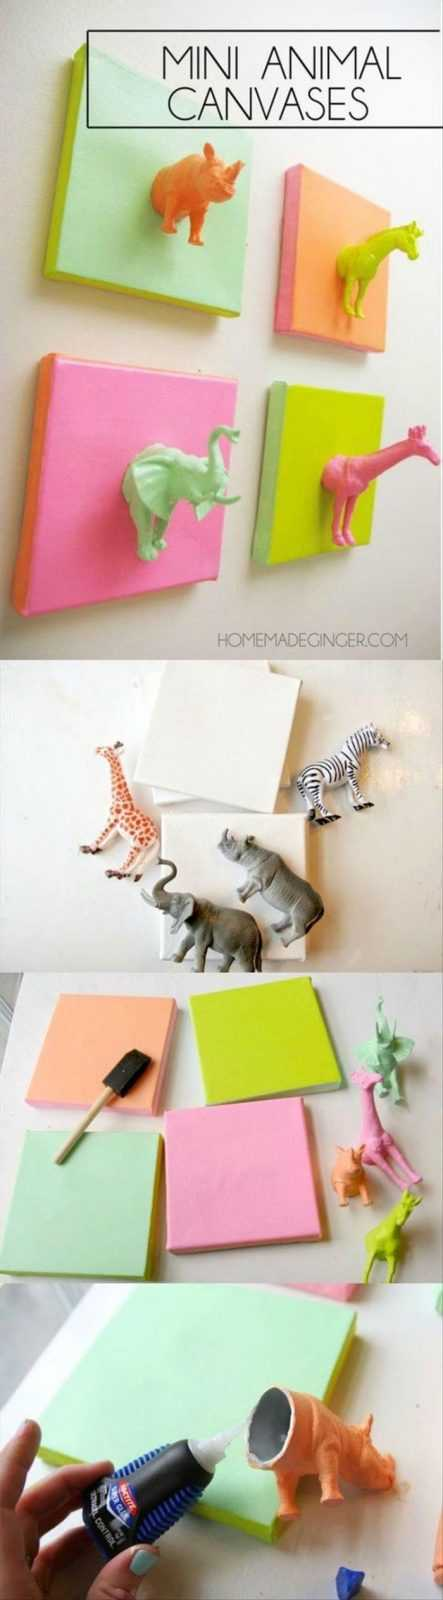 great diy project - simple-yet-great-diy-project-ideas-001